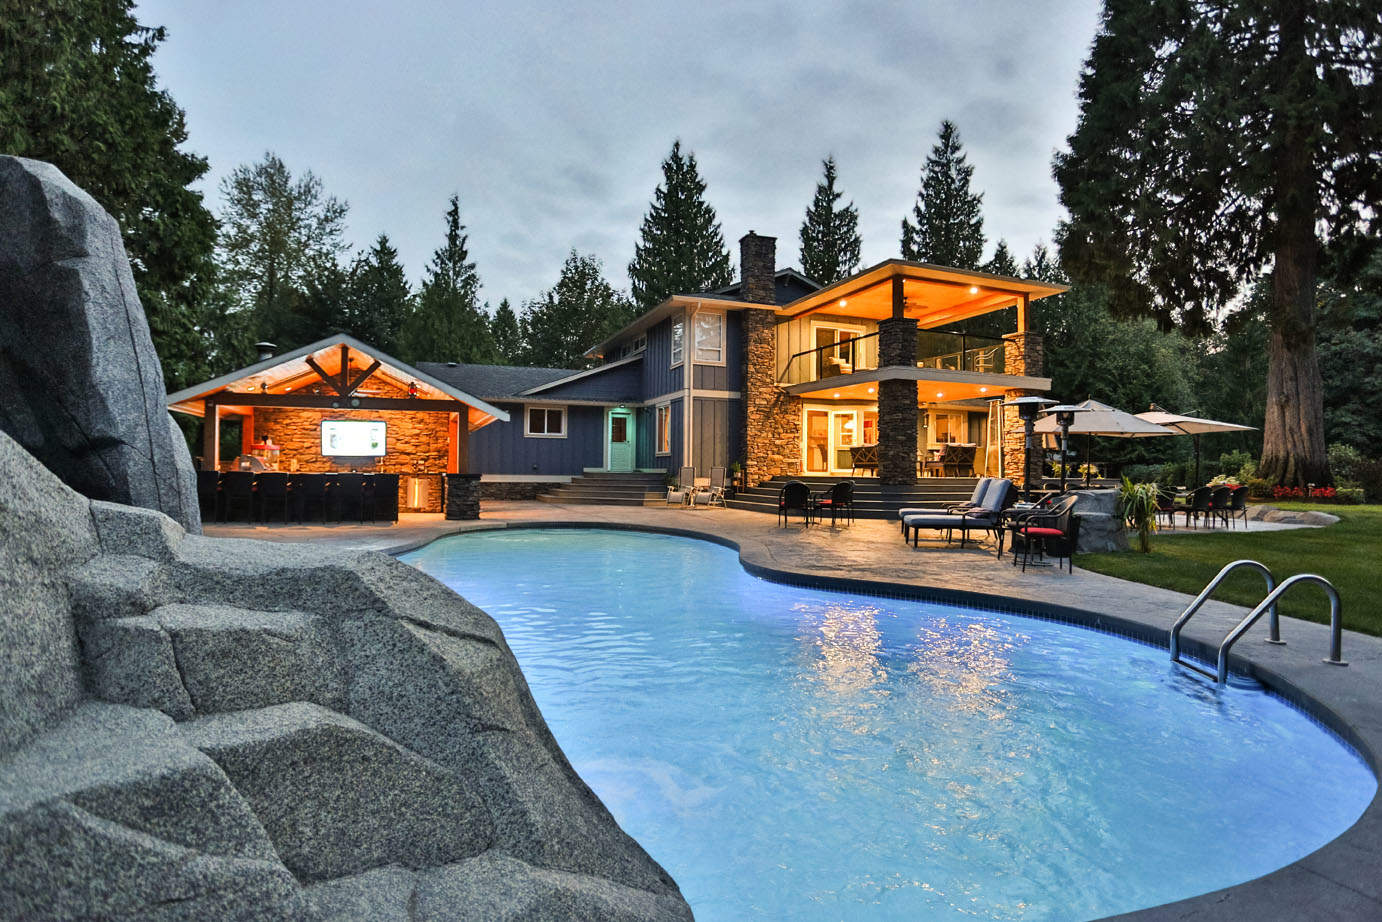 Backyard makeover with year-round kitchen, custom pool and rock work